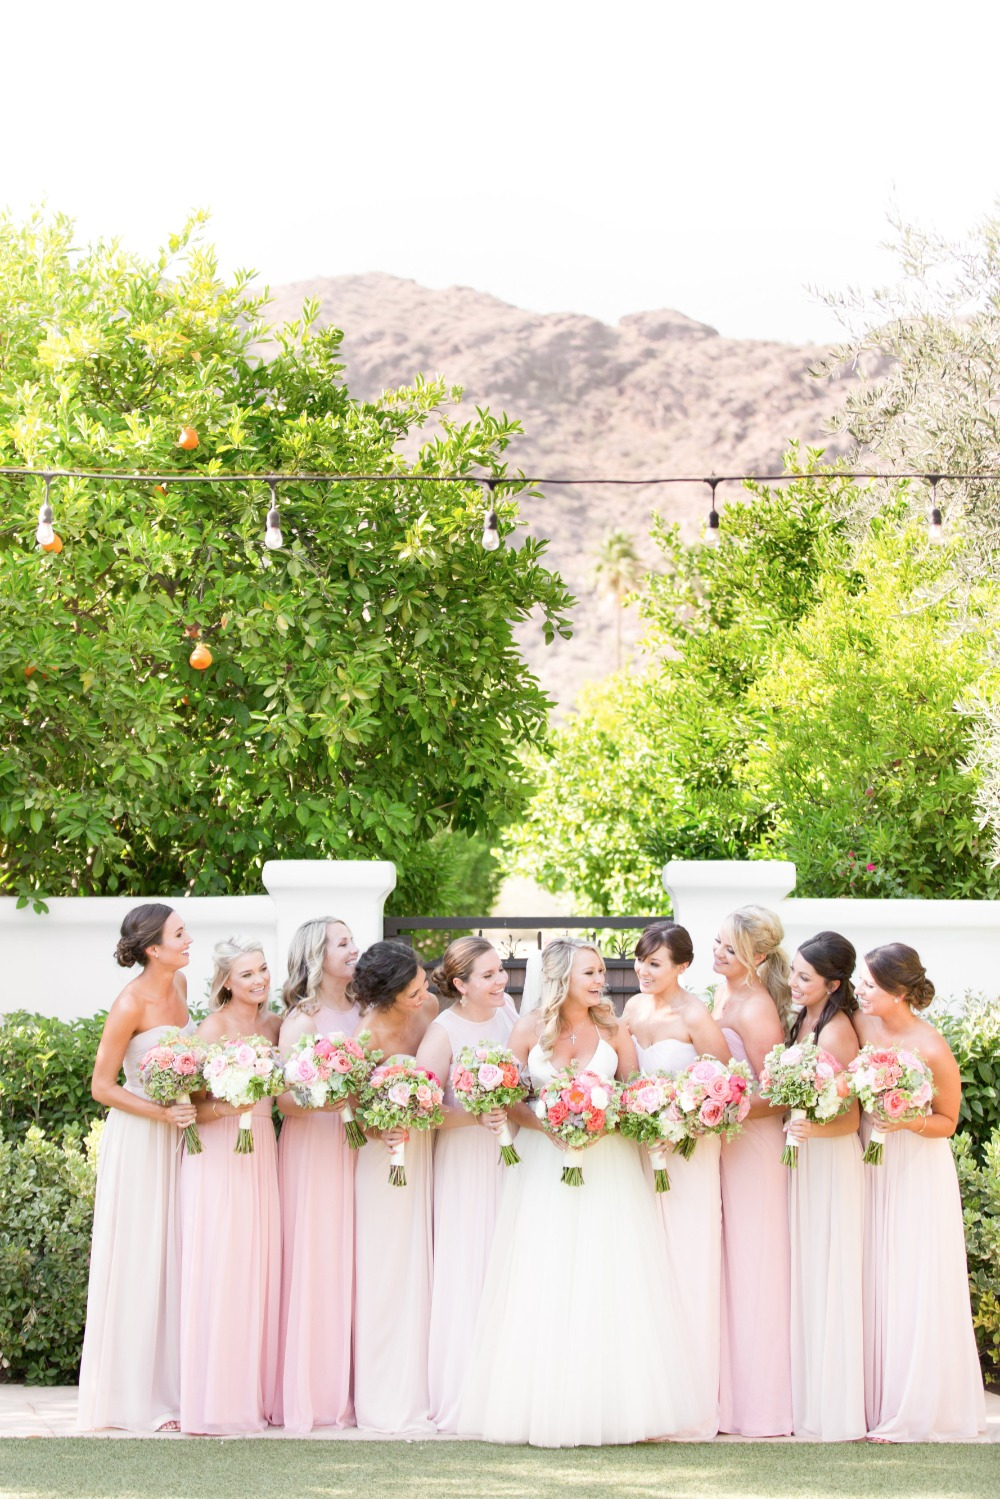 Bridesmaids in shades of blush